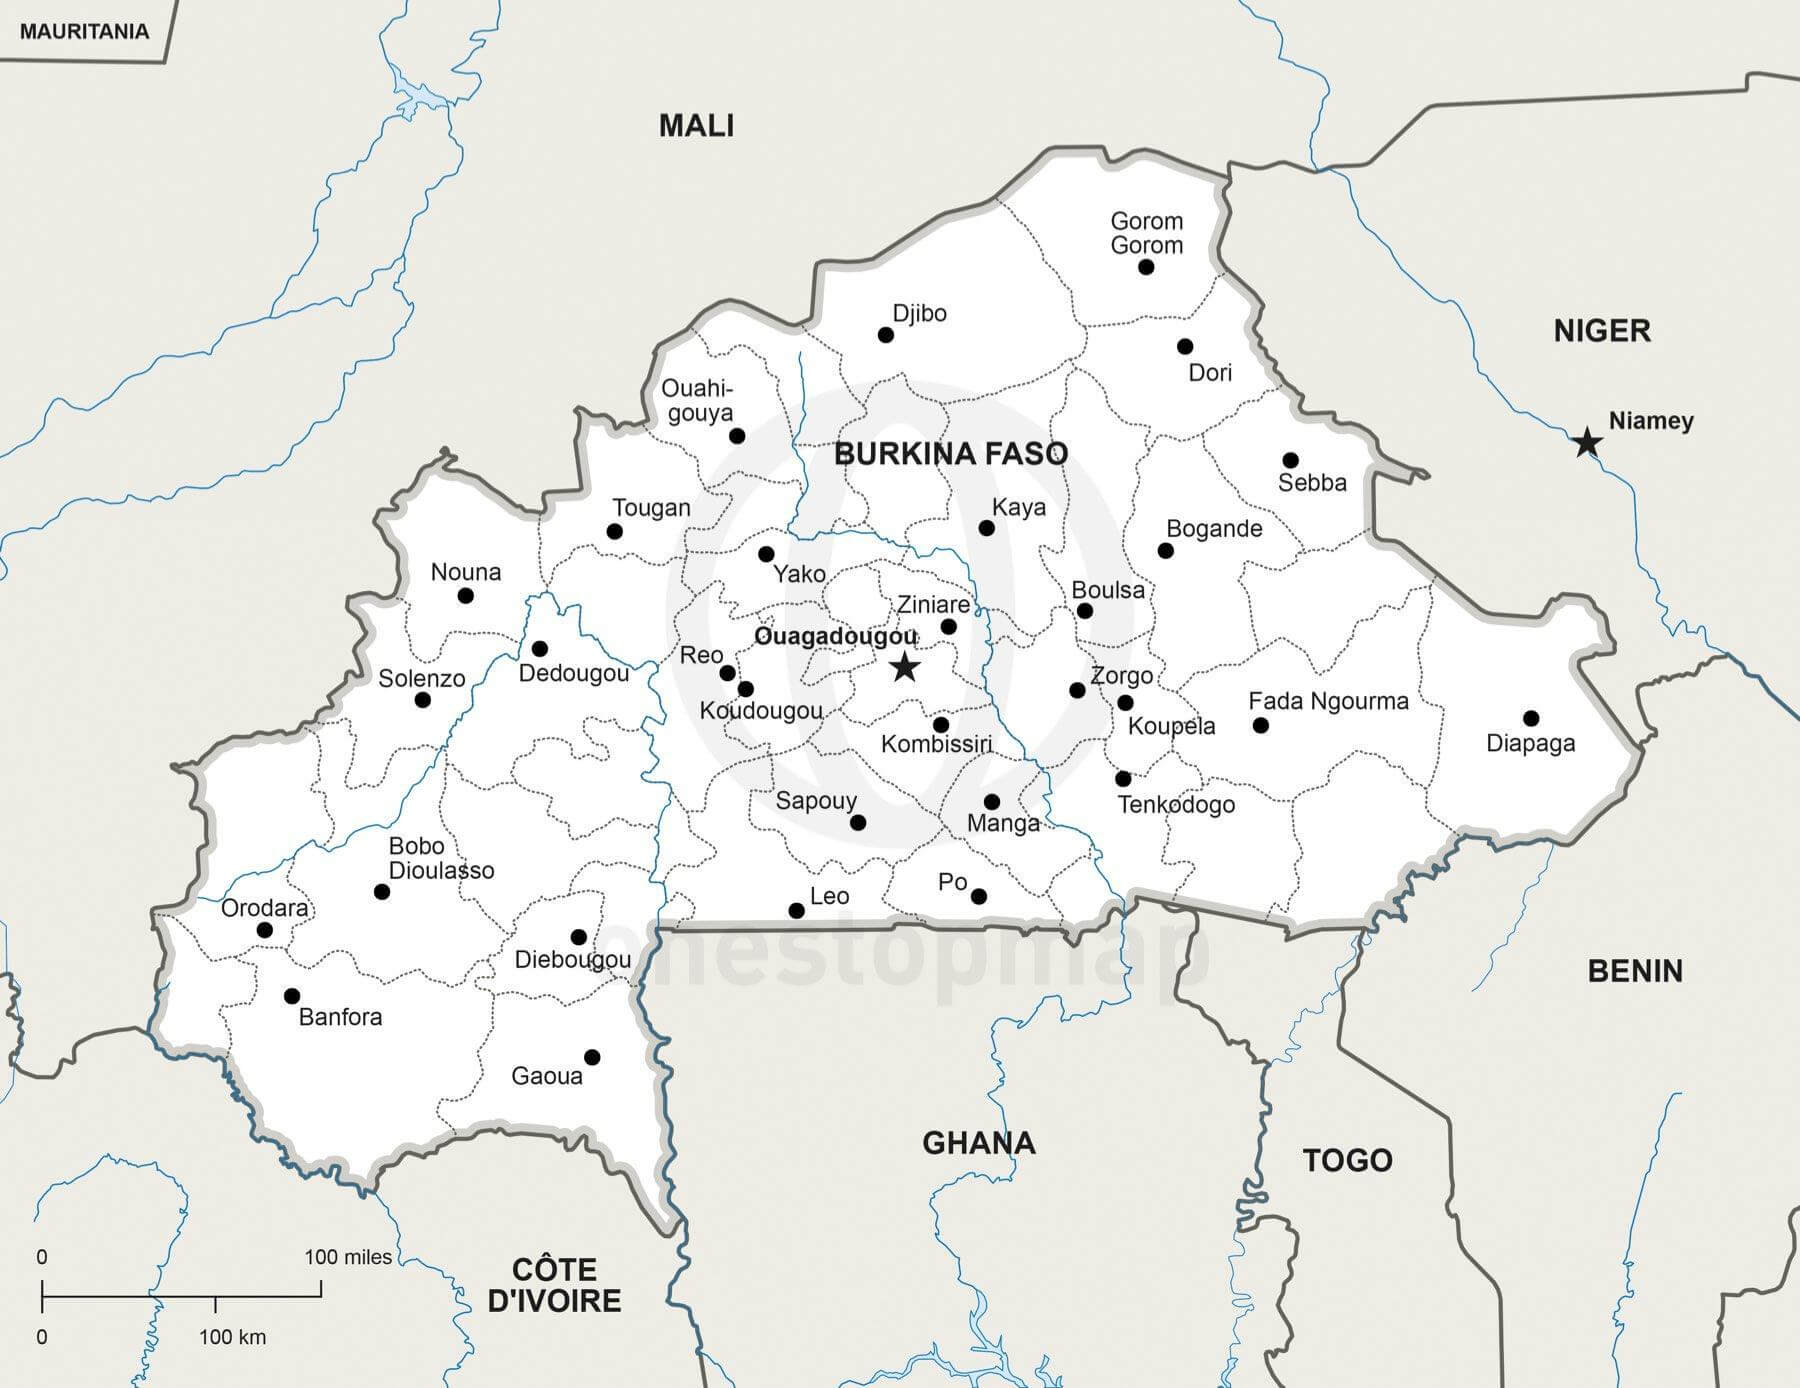 Map of Burkina Faso political